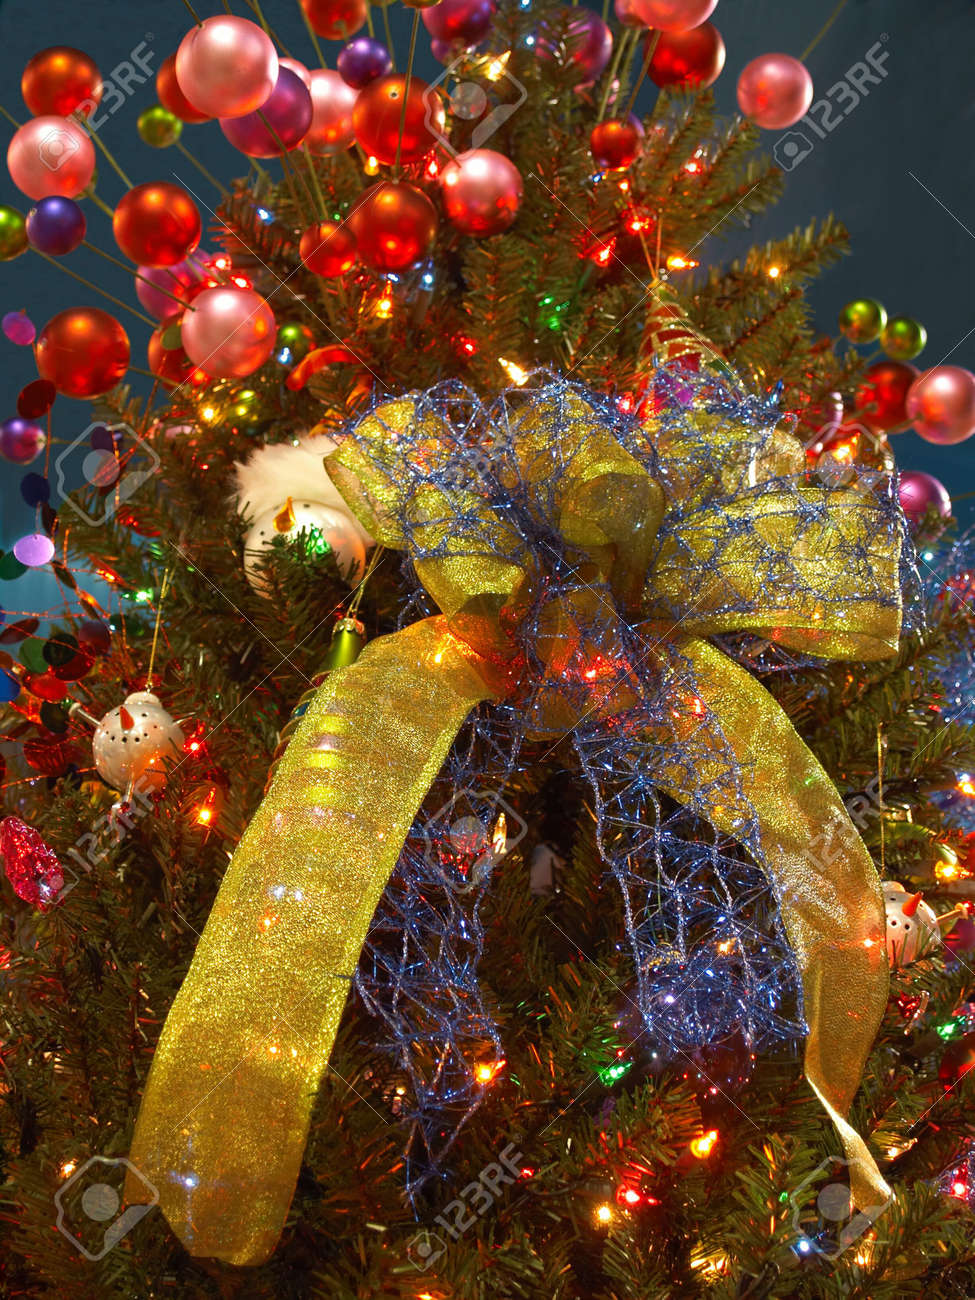 Christmas Tree Spray.Christmas Tree With Big Gold Ribbon And Spray Of Red Balls